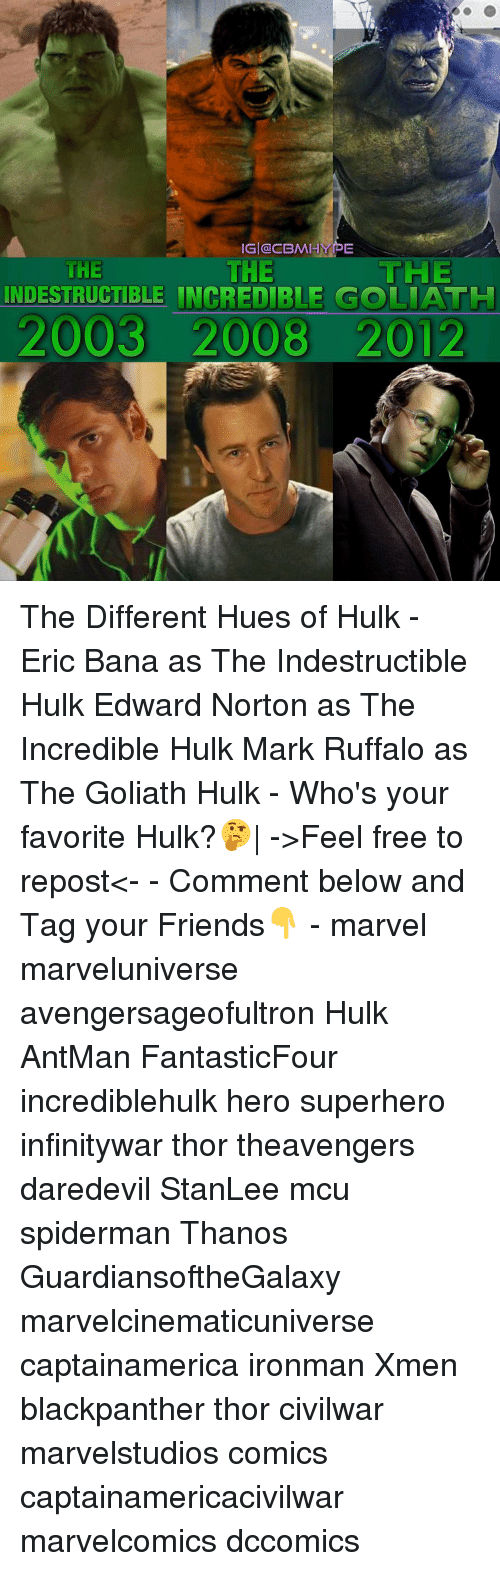 Hype, Memes, and SpiderMan: IG CBM HYPE  THE  HE  THE  INDESTRUCTIBLE INCREDIBLE GOLIATH  2003 2008 2012 The Different Hues of Hulk - Eric Bana as The Indestructible Hulk Edward Norton as The Incredible Hulk Mark Ruffalo as The Goliath Hulk - Who's your favorite Hulk?🤔| ->Feel free to repost<- - Comment below and Tag your Friends👇 - marvel marveluniverse avengersageofultron Hulk AntMan FantasticFour incrediblehulk hero superhero infinitywar thor theavengers daredevil StanLee mcu spiderman Thanos GuardiansoftheGalaxy marvelcinematicuniverse captainamerica ironman Xmen blackpanther thor civilwar marvelstudios comics captainamericacivilwar marvelcomics dccomics